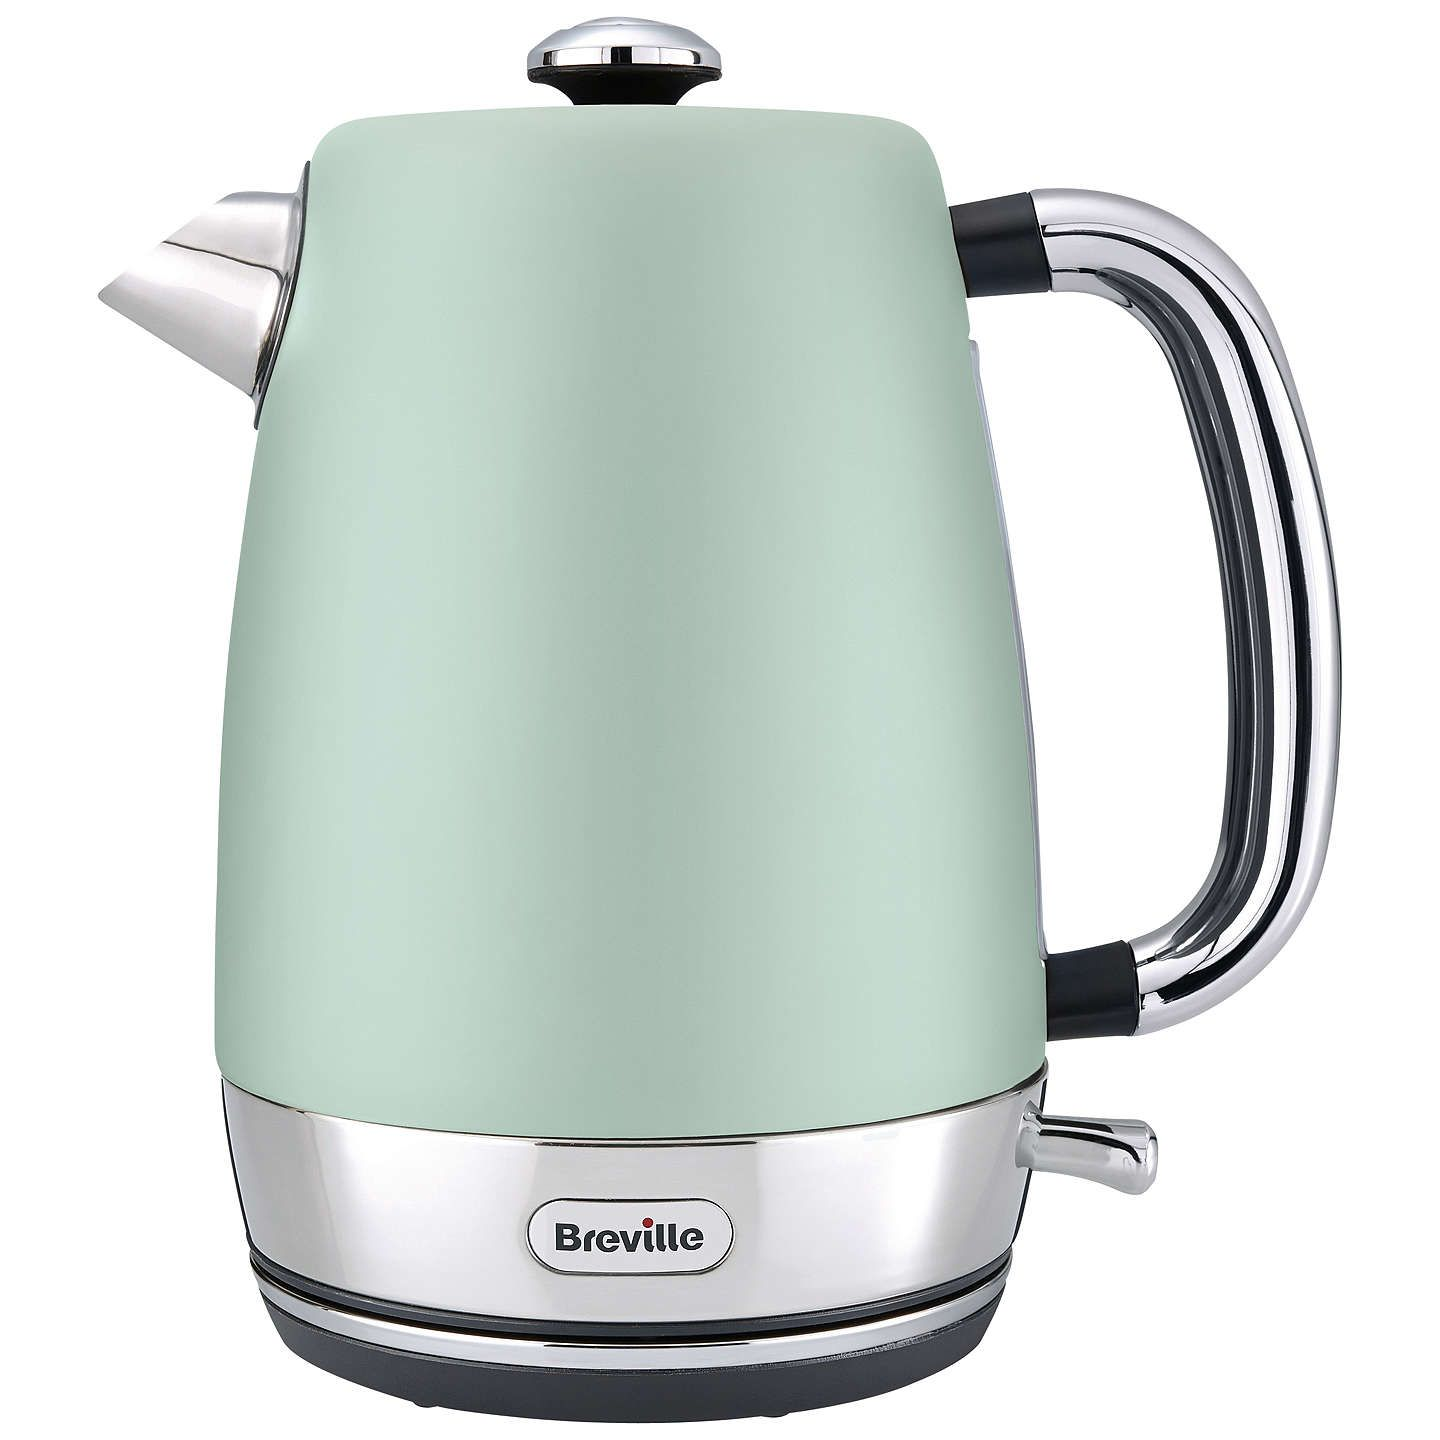 Sencor Swk 181x 1 8 Liter Electric Kettle In 2018 Products